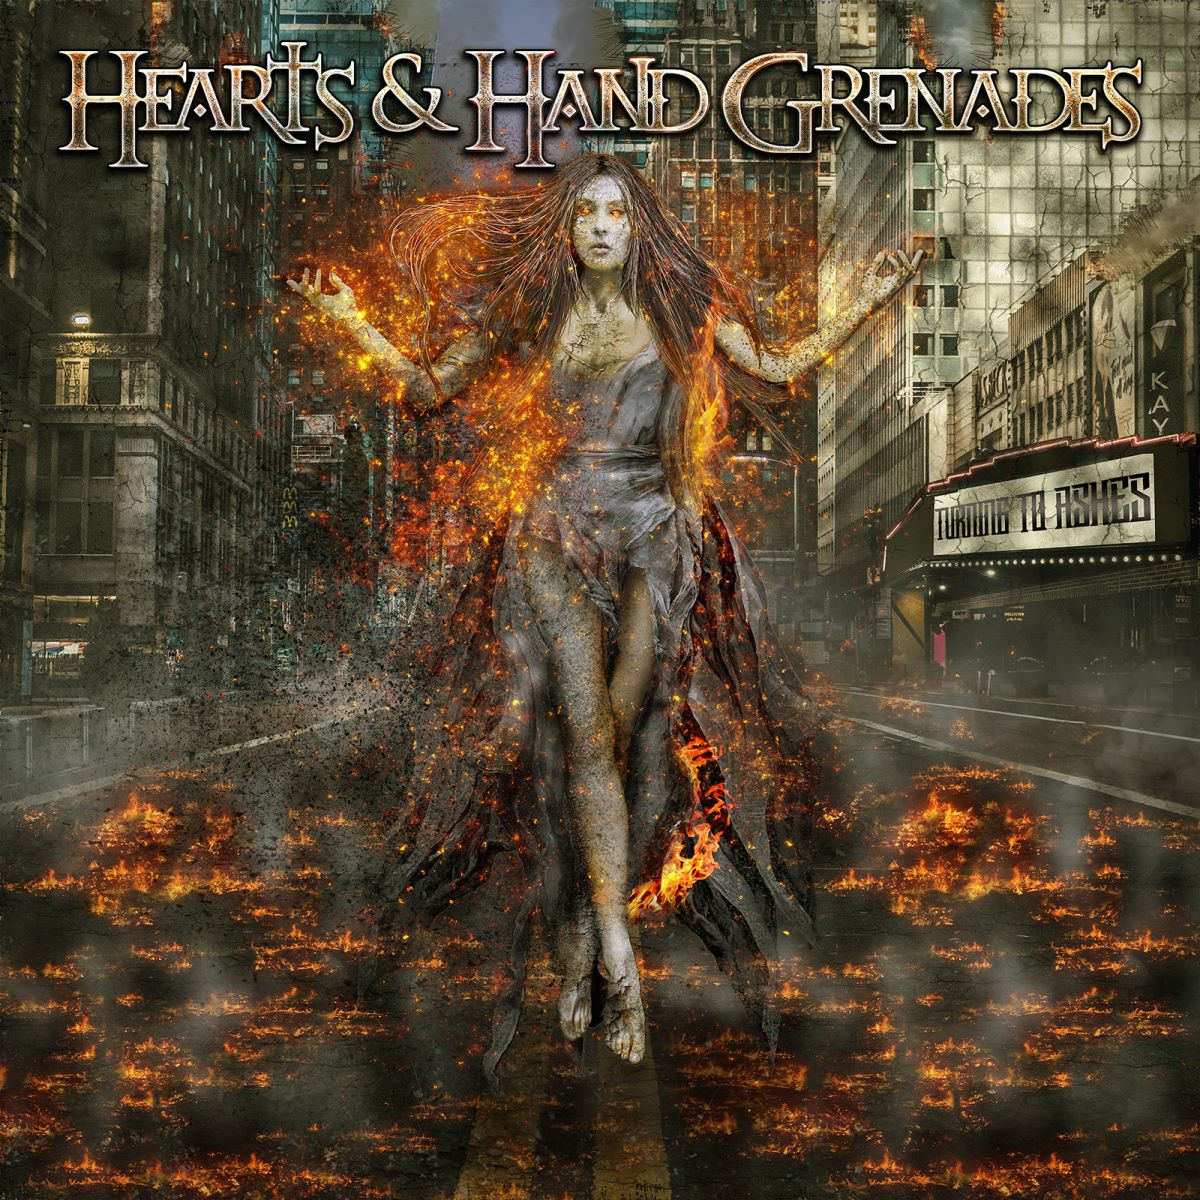 Hearts and Hand Grenades - Turning To Ashes - album cover